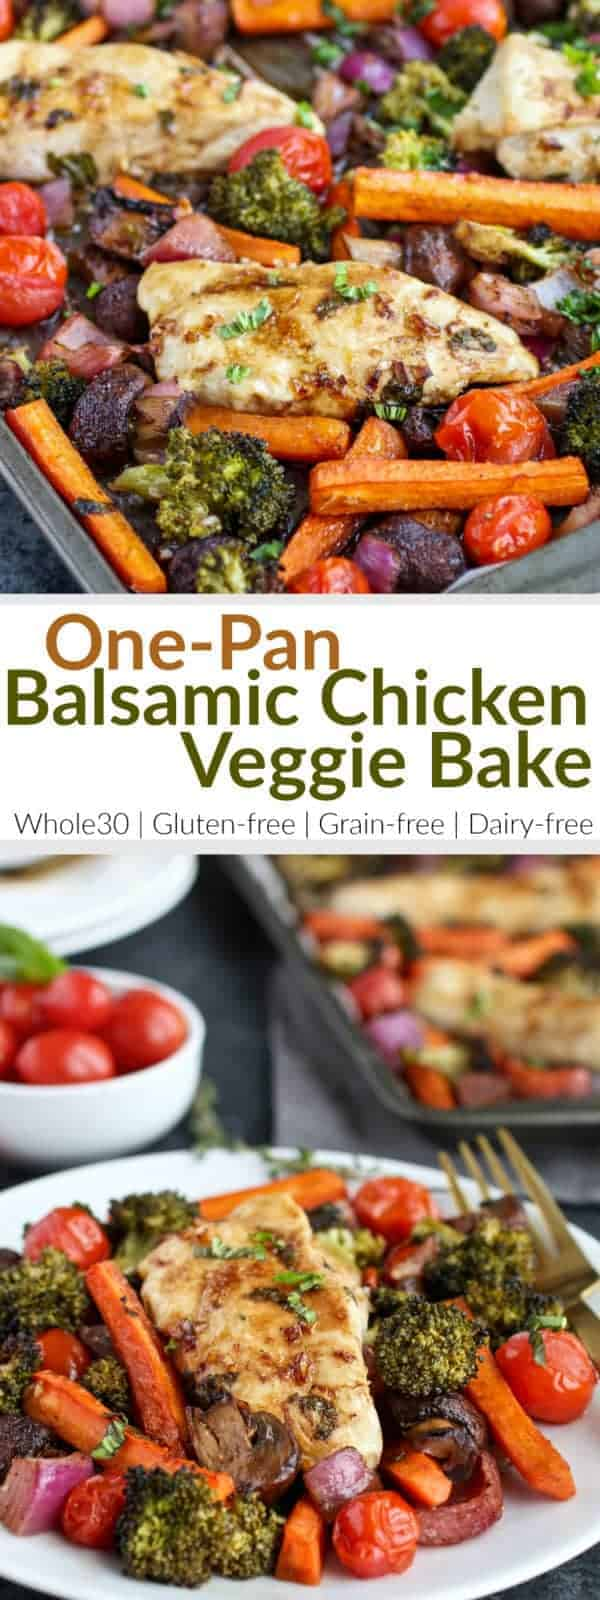 Pinterest image for One-Pan Balsamic Chicken Veggie Bake